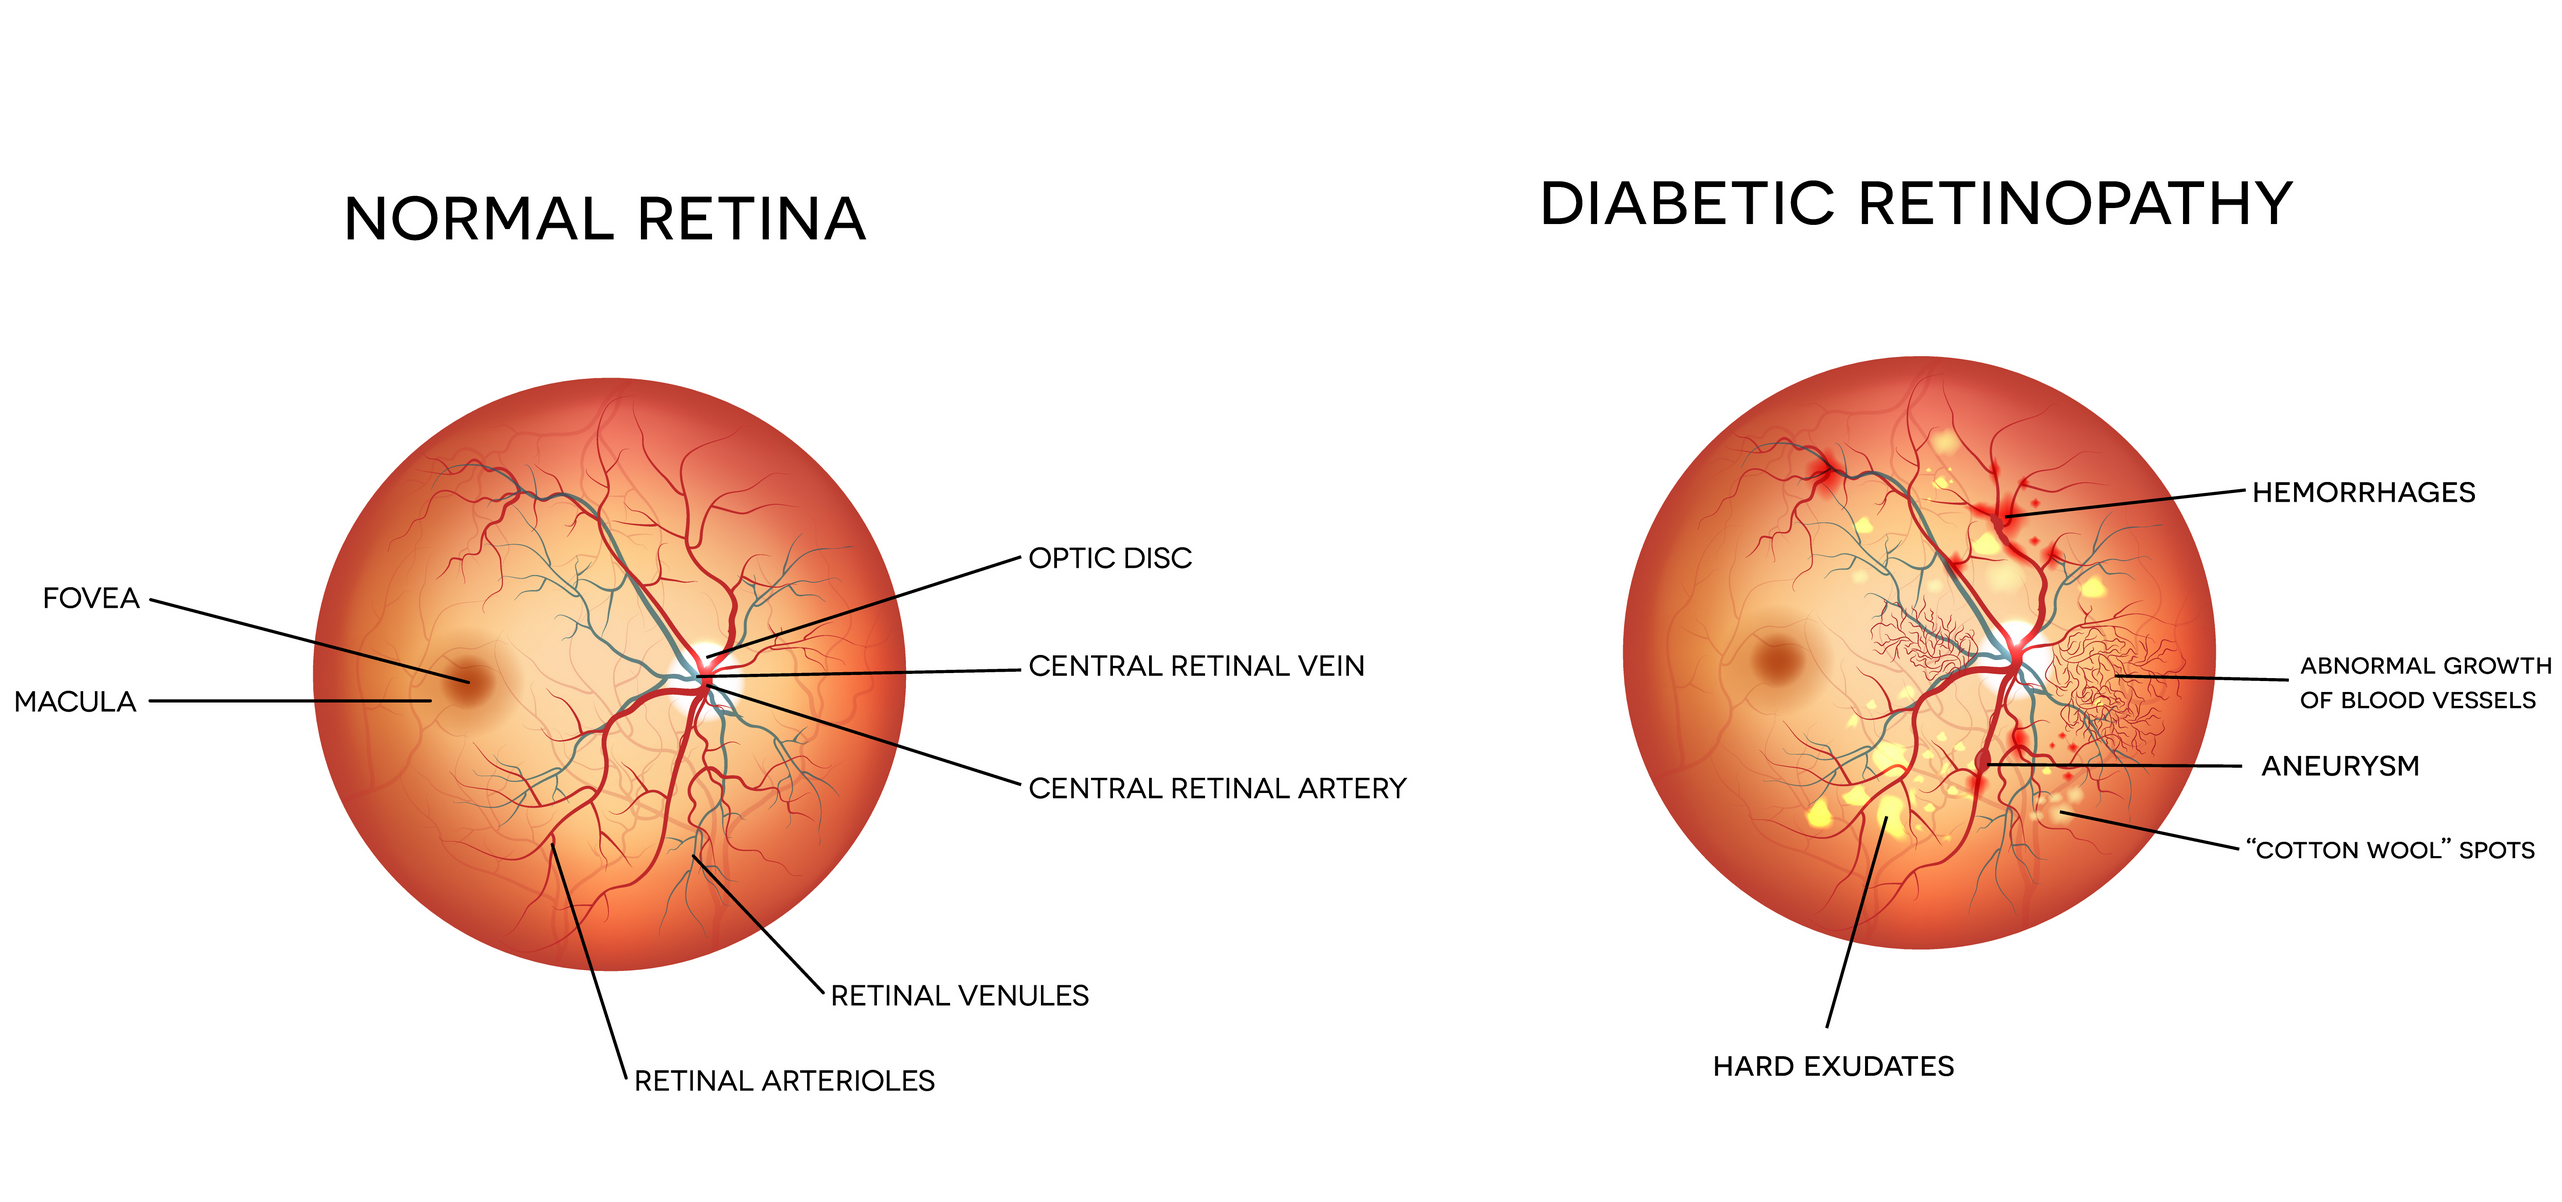 Demonstration of how Diabetic Retinopahy manifests itself in an individuals eye. Figure taken from [Dr. Winston J. Scott's website.](http://wjscottmd.com/diabetic-retinopathy/)